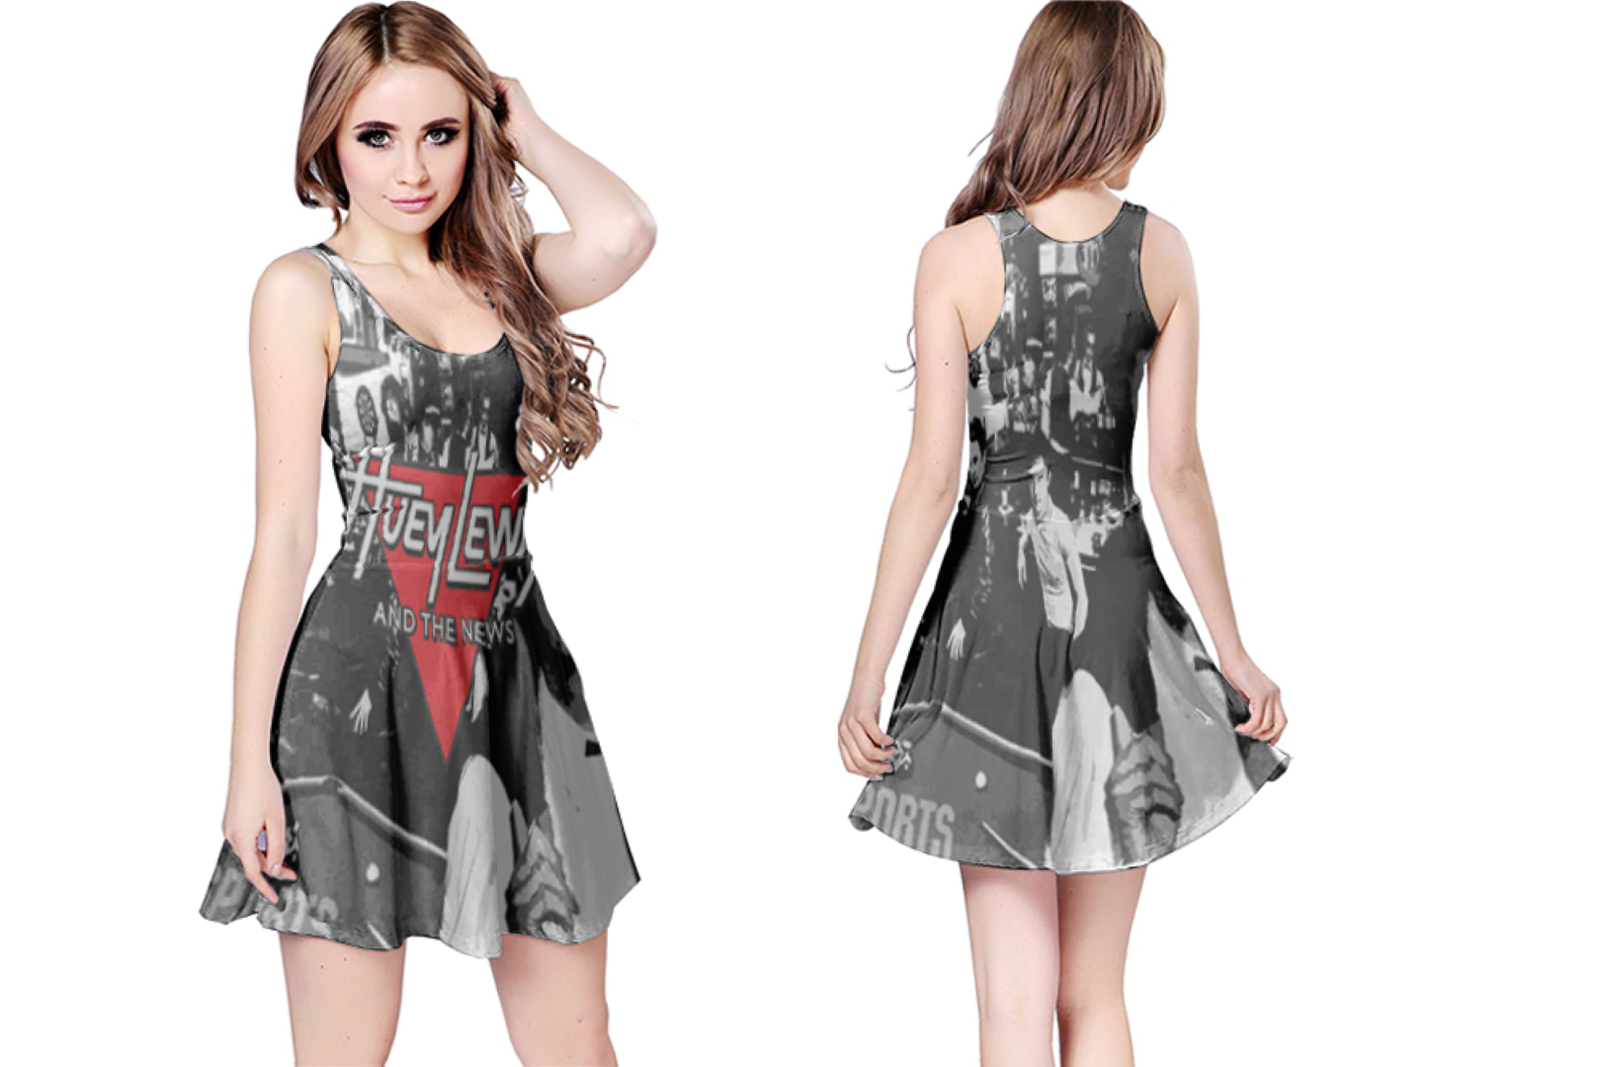 Primary image for Huey Lewis & the News  WOMENS REVERSIBLE SLEEVELESS SHORT MINI DRESS